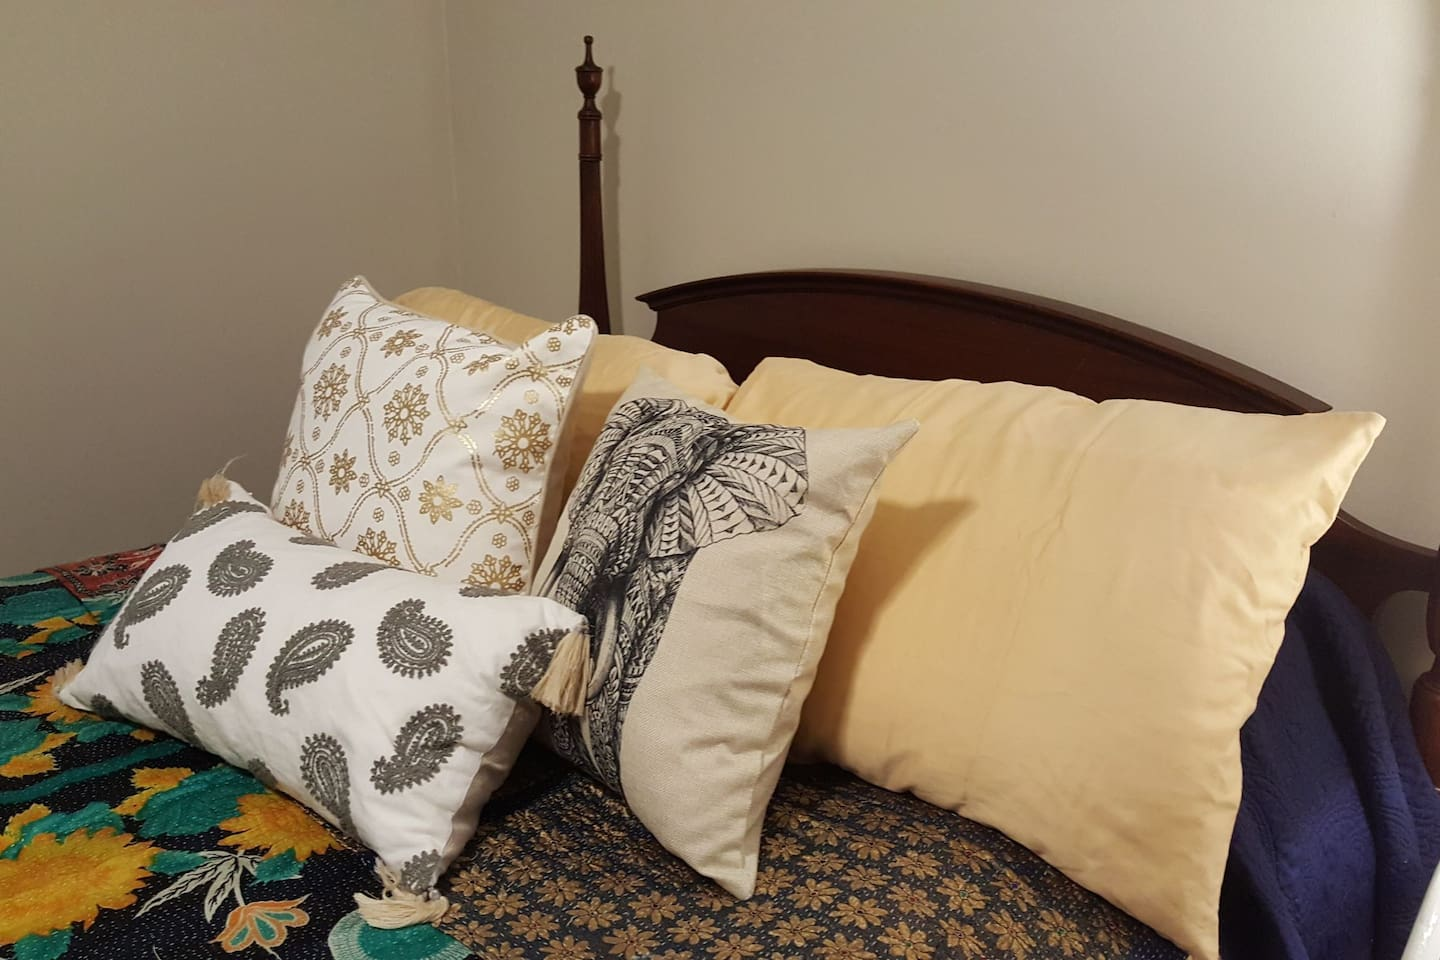 Extra pillows for your comfort